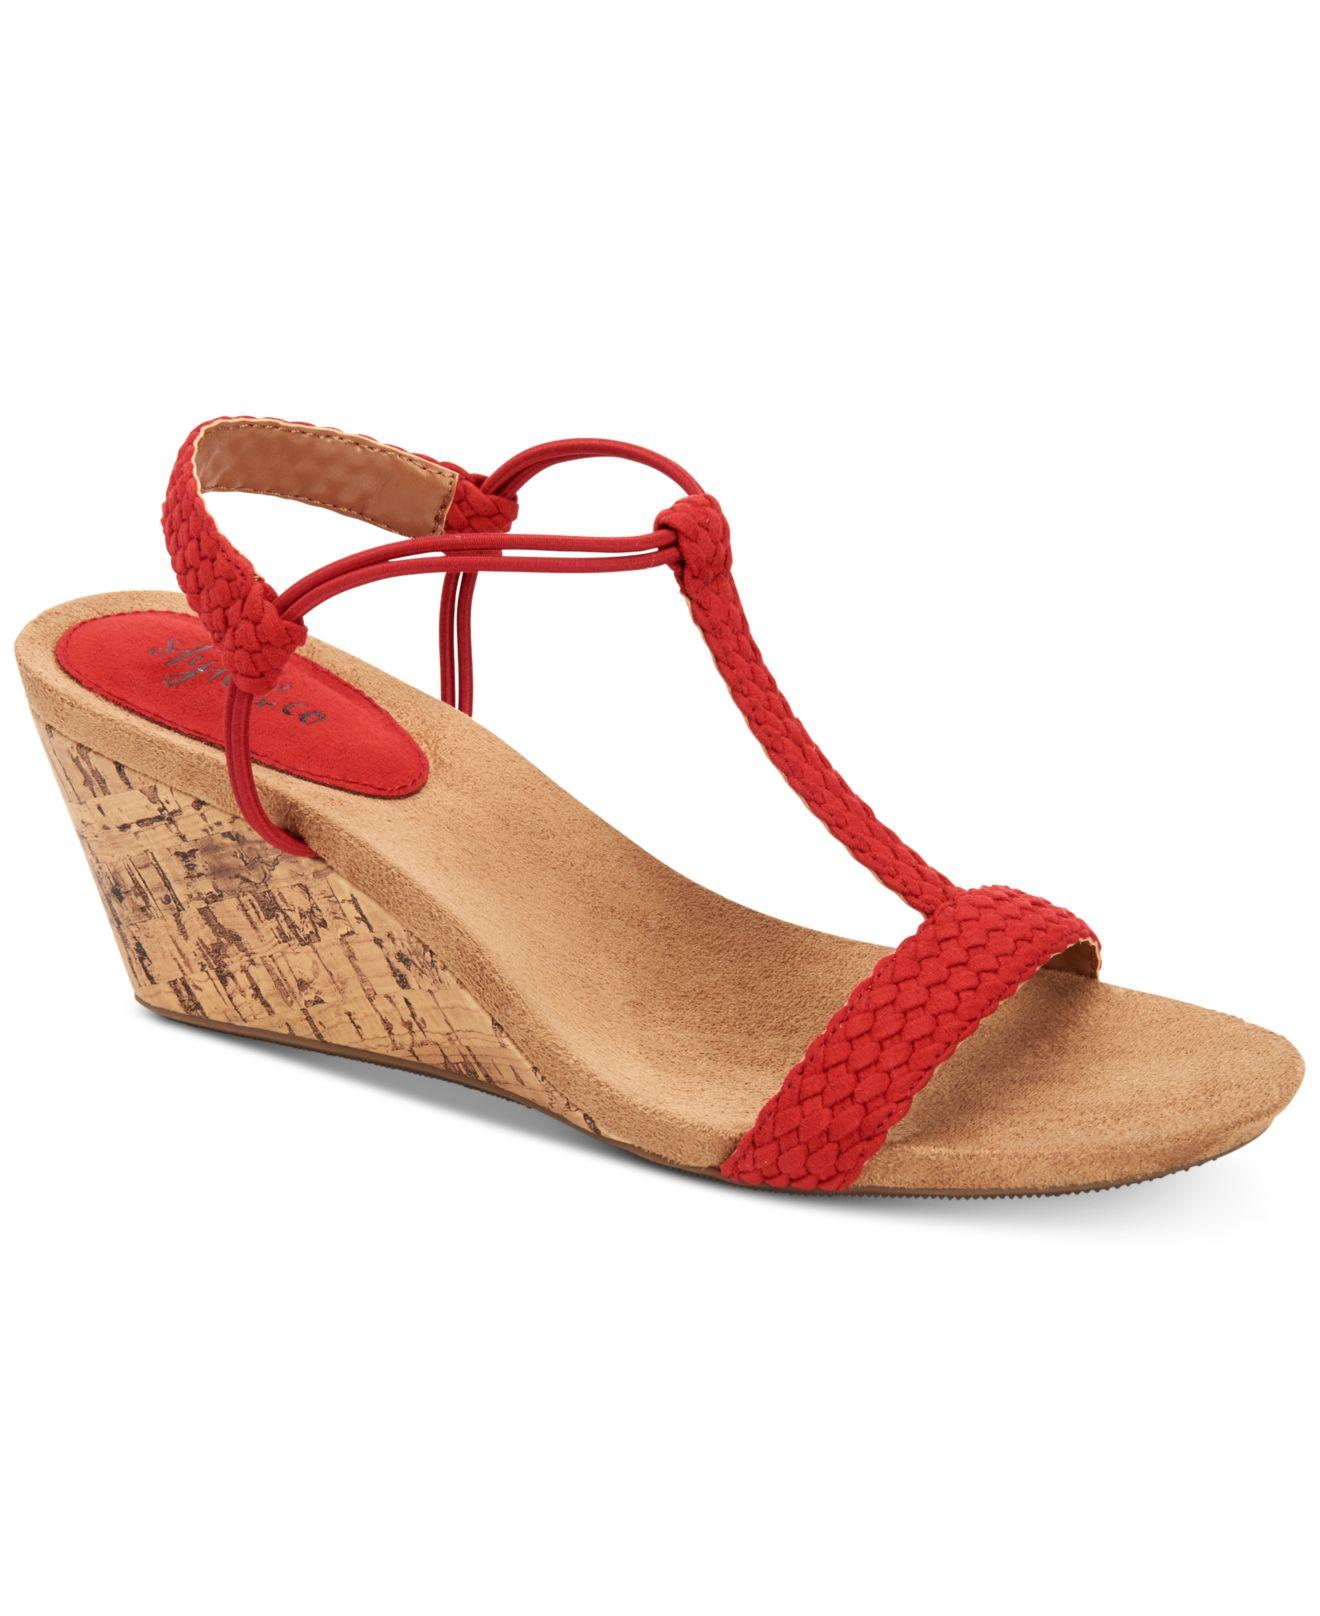 a0e2fb95f1c5 Lyst - Style   Co. Mulan Wedge Sandals in Red - Save 59%